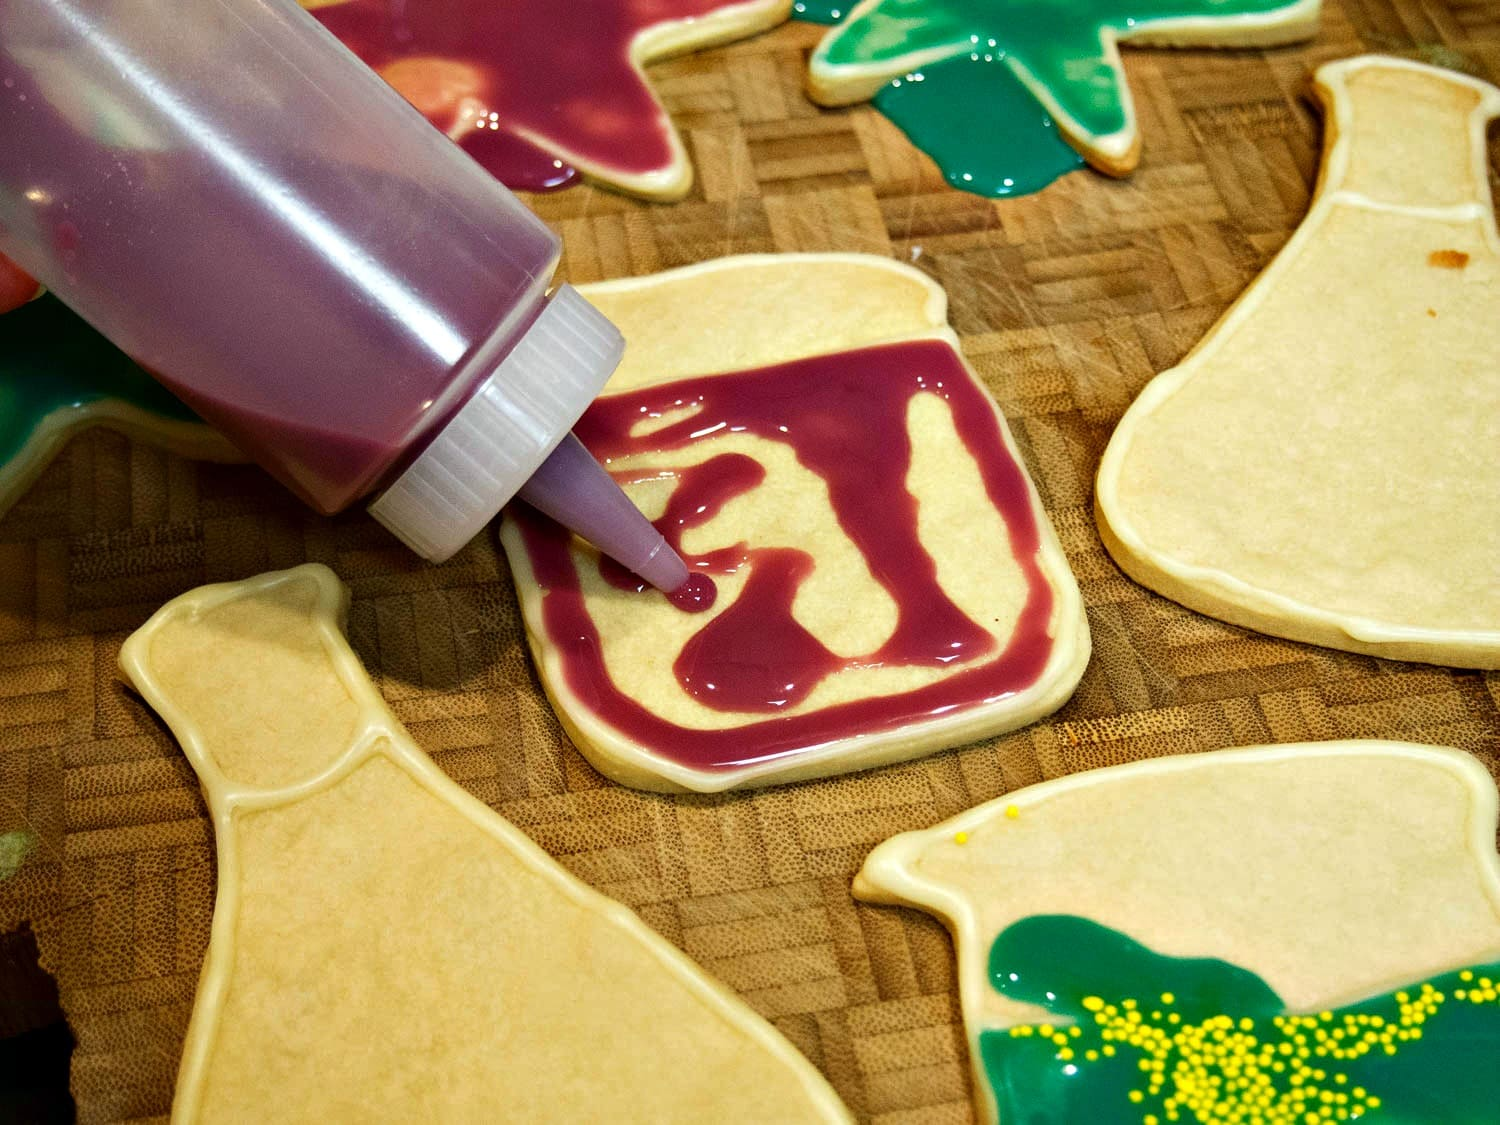 These Chemistry Cookies are adorable! Perfect for a science birthday party or just sharing your love of science with friends.